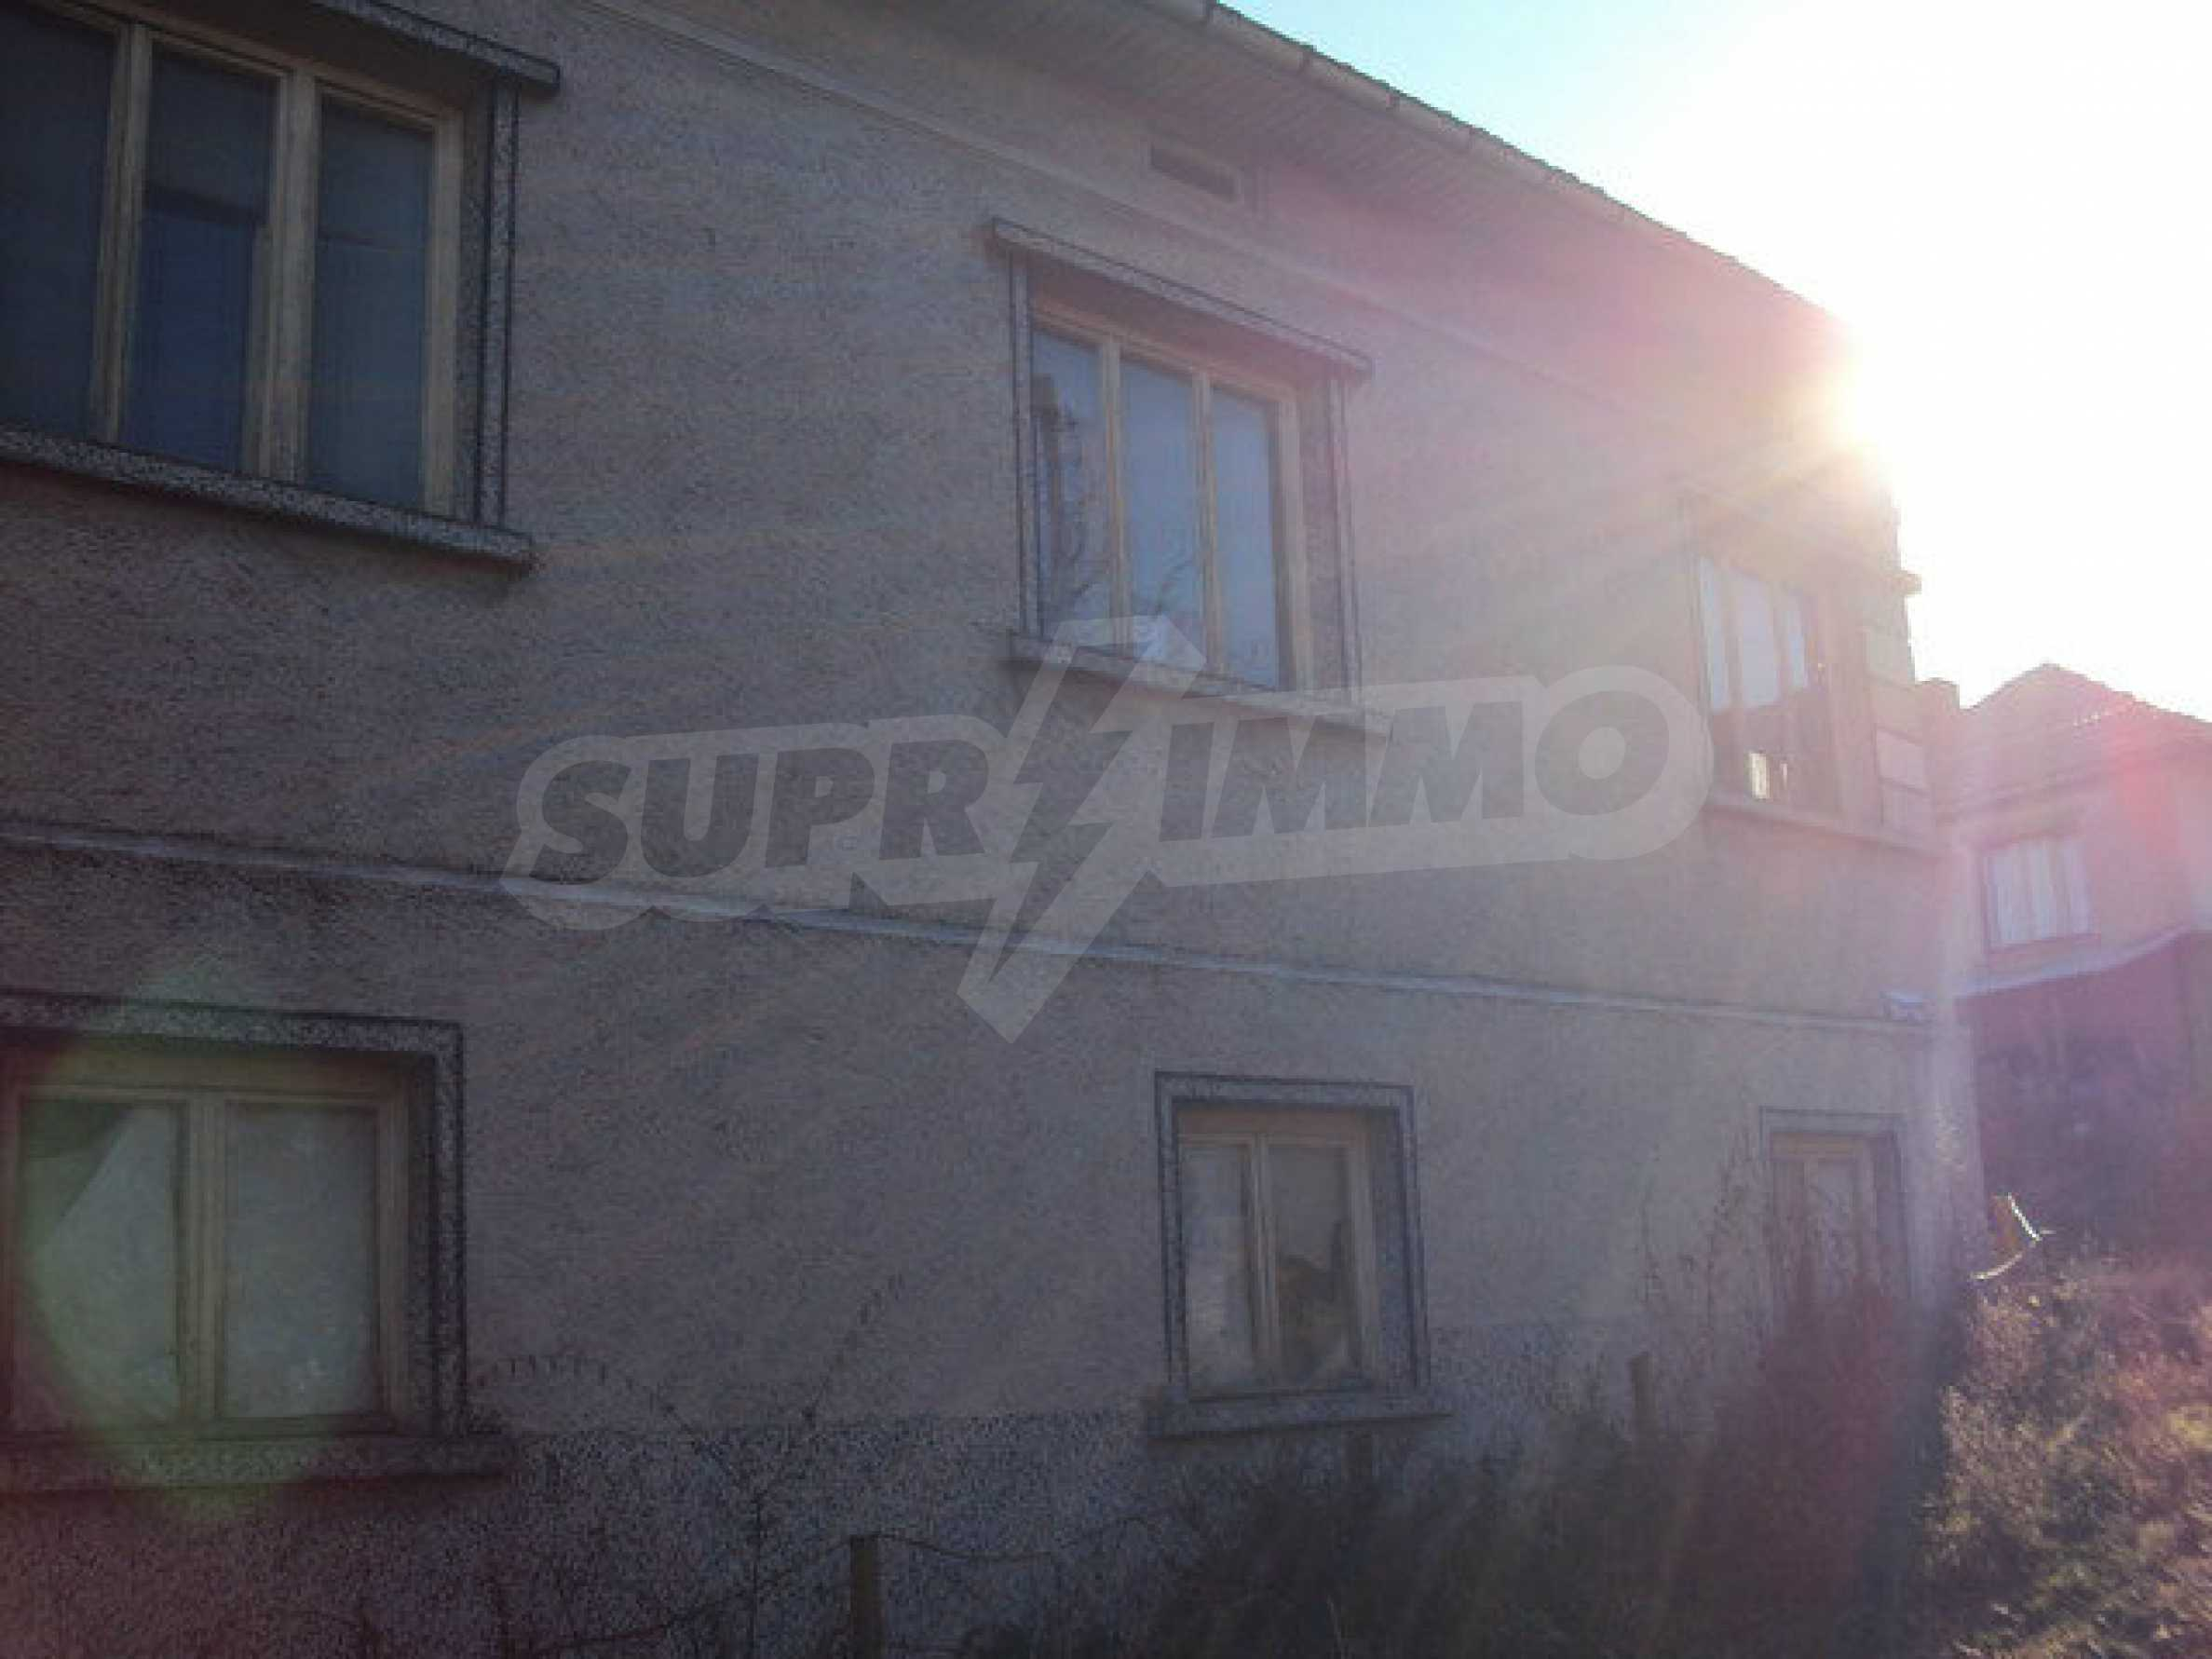 Spacious house in excellent condition in a village 25 km. the old capital of Veliko Tarnovo 43